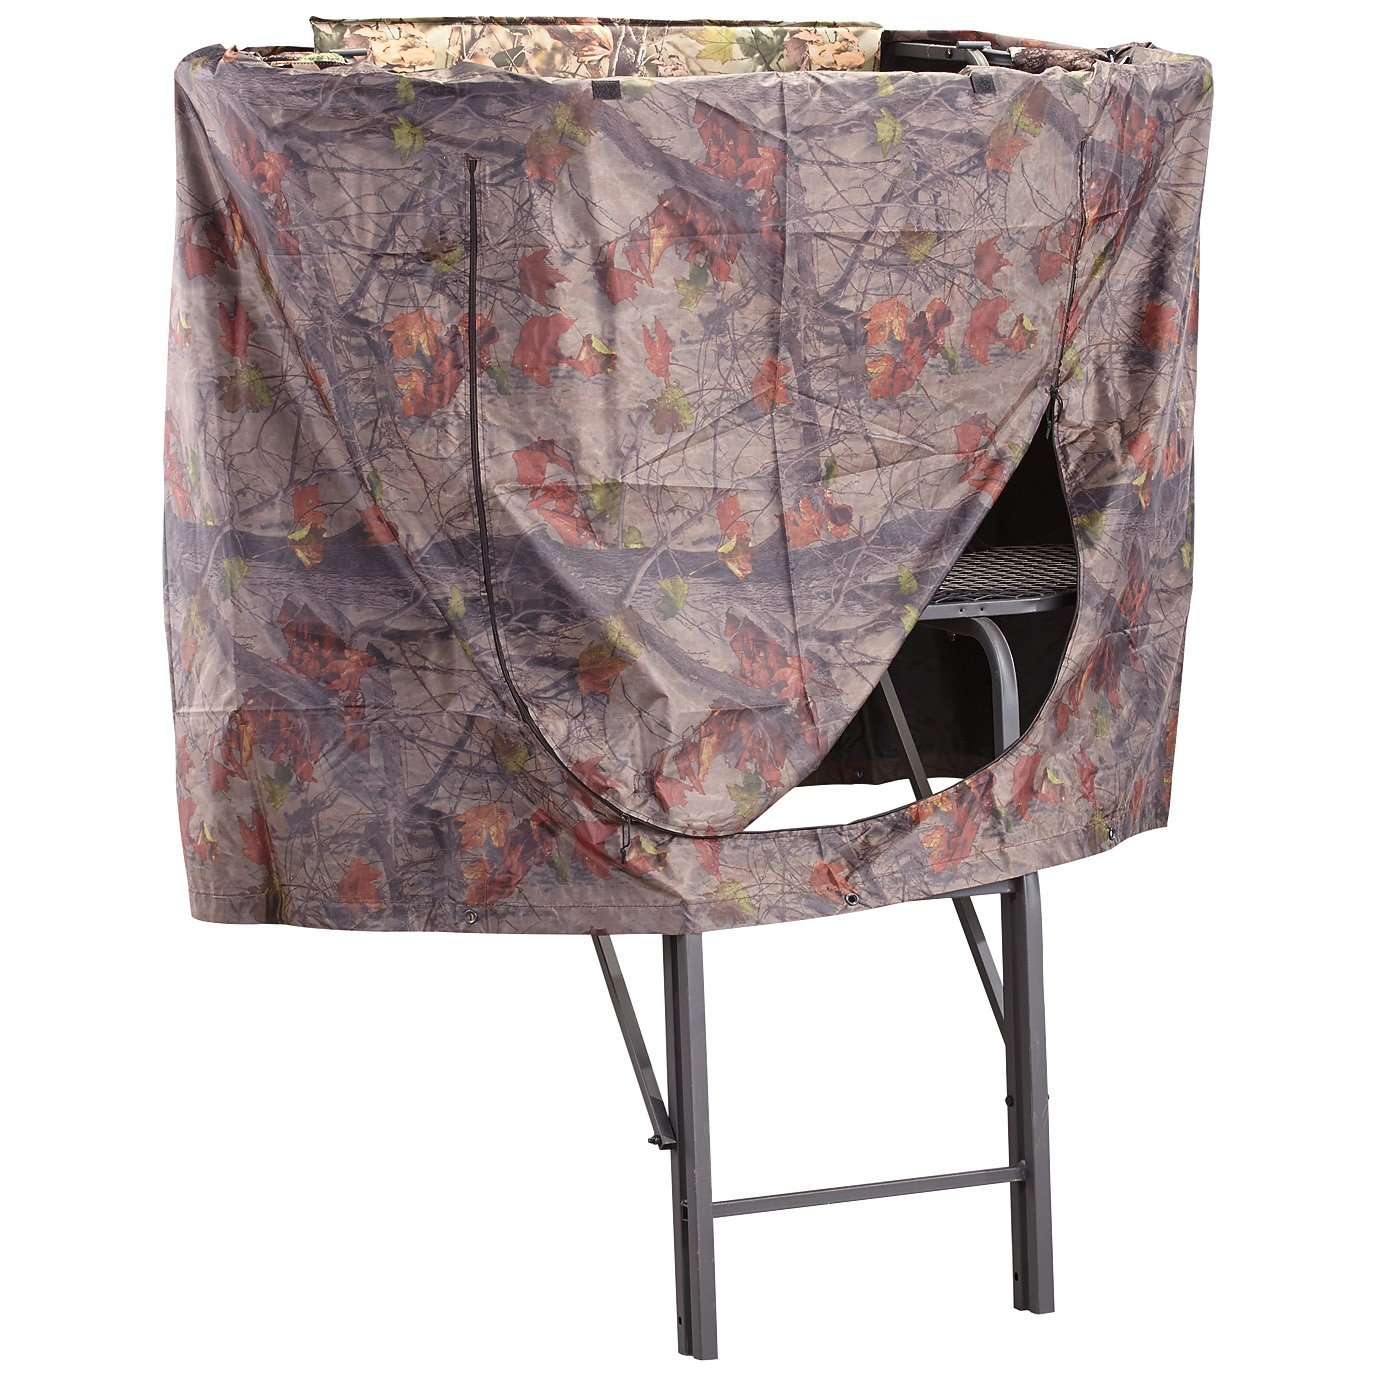 Guide Gear Tree Stand Hunting Blind